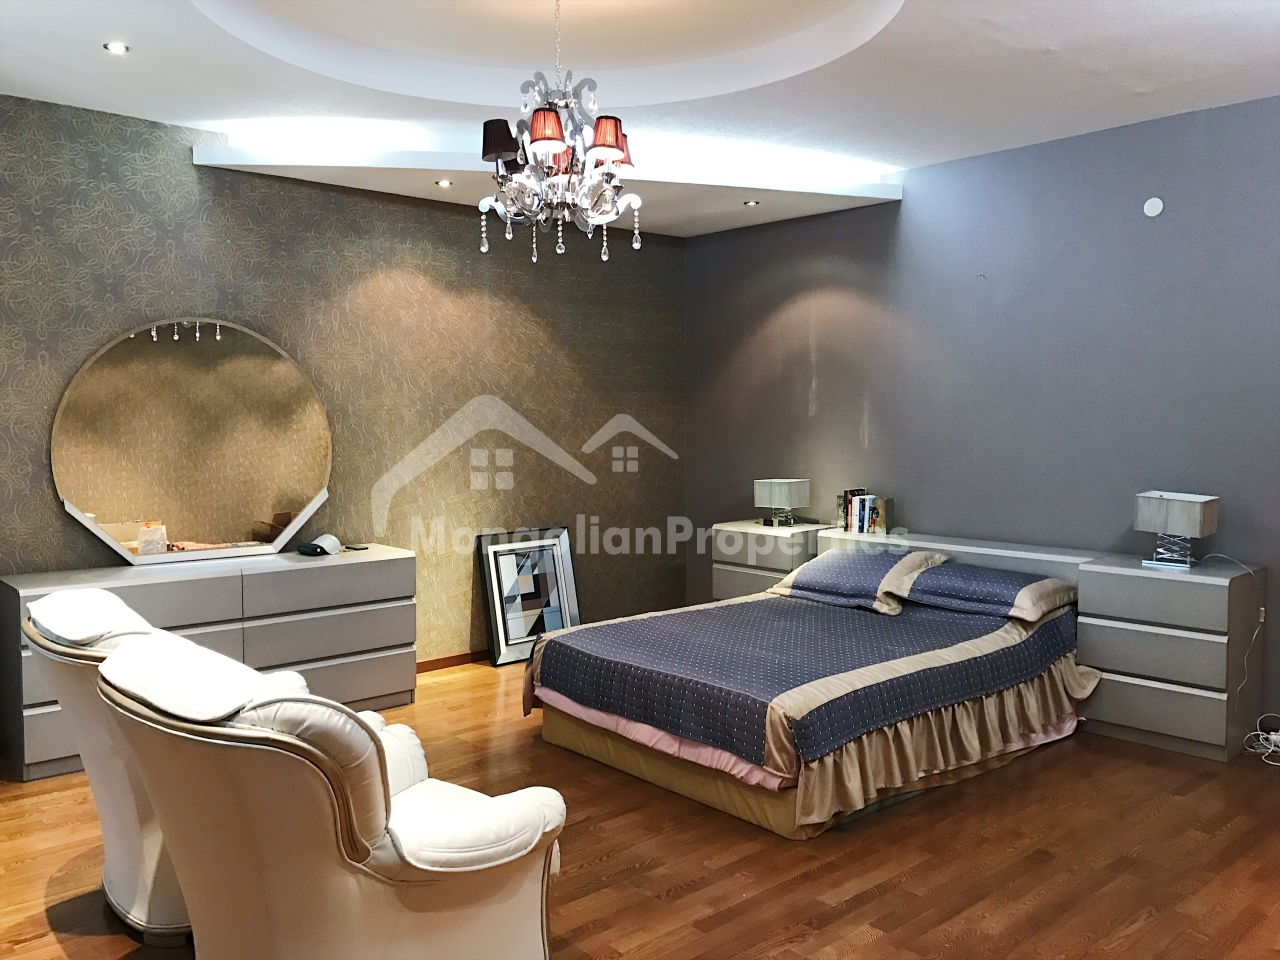 FOR RENT: 2 bedroom 1 office room 3 bathroom apartment right next to ...